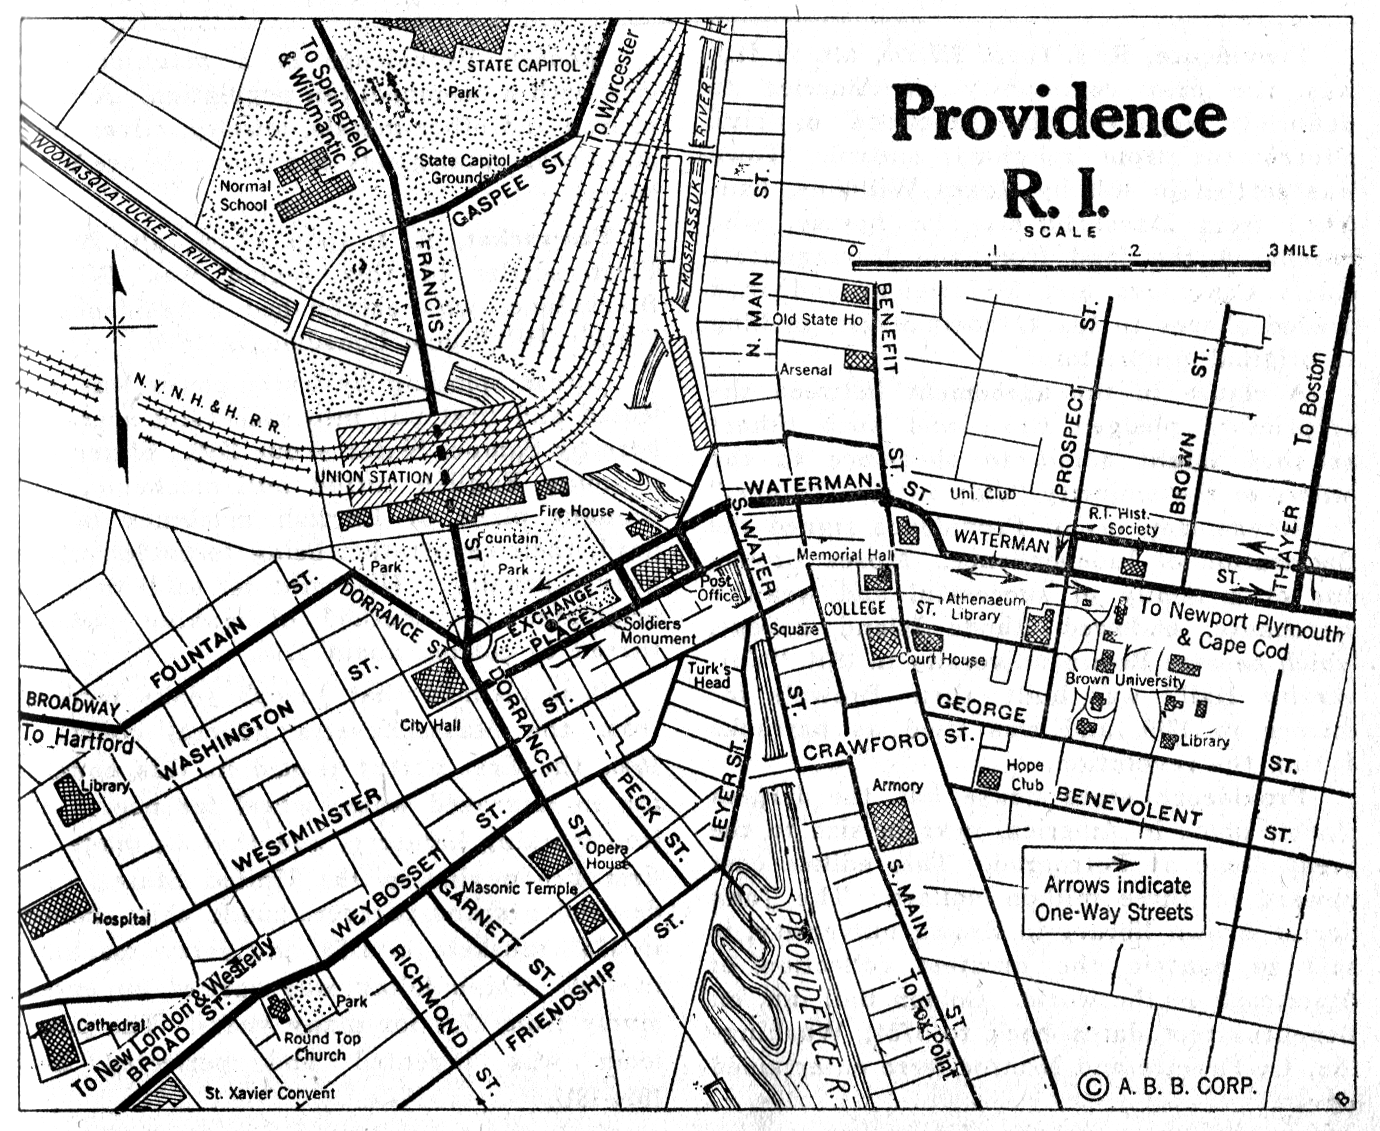 Rhode Island City Maps at AmericanRoads.com